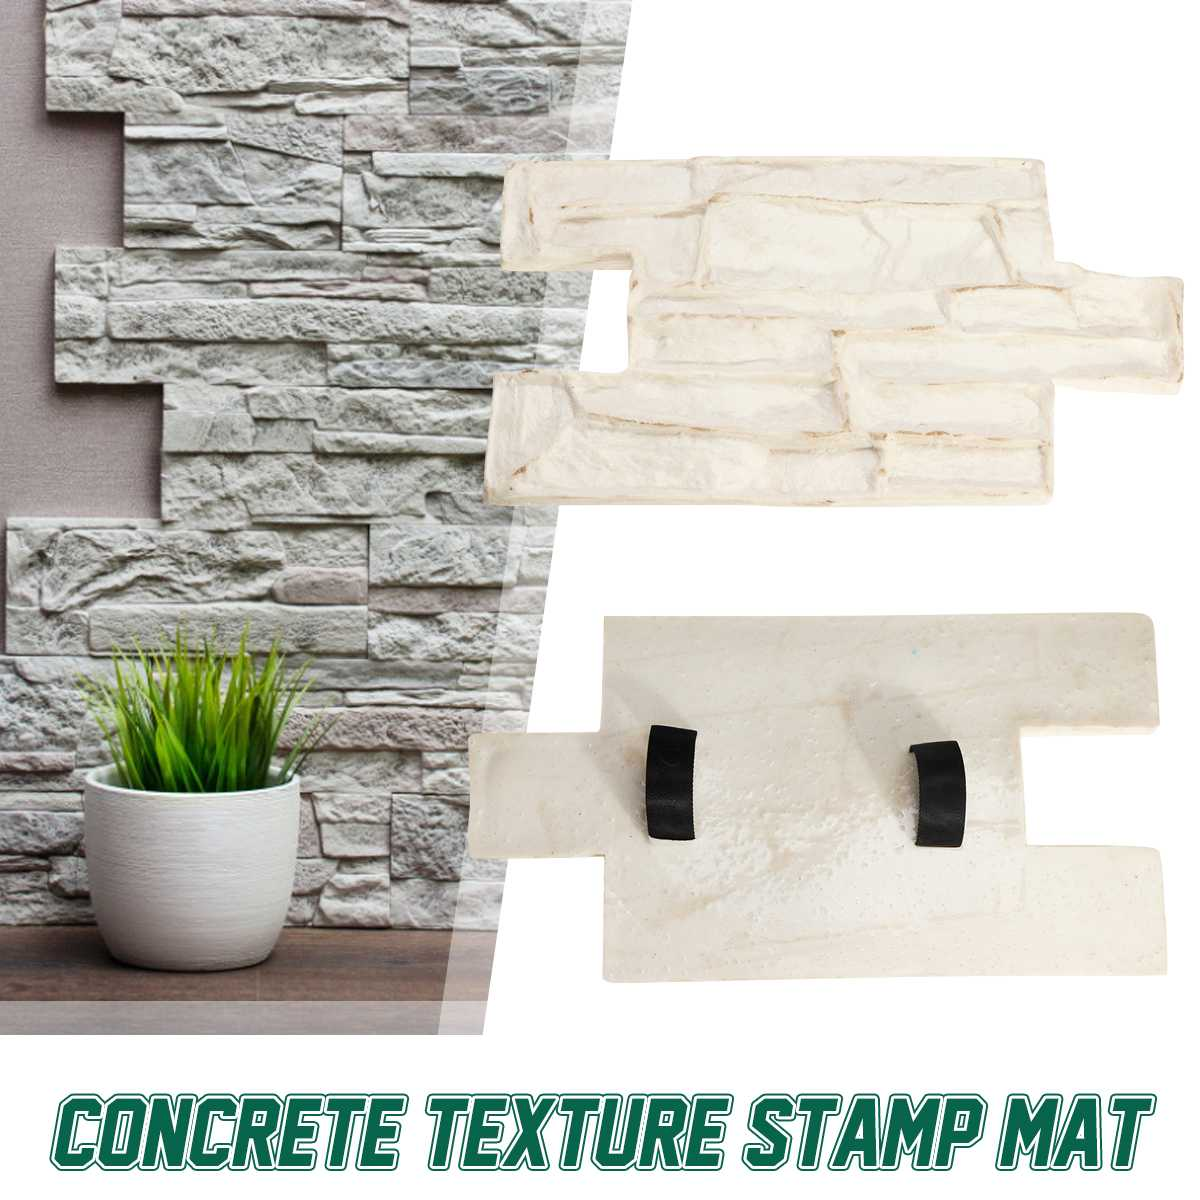 New Stamps Model Polyurethane Molds For Concrete Cement Plaster Rubber Molds Garden House Decor Texture Wall And Floors